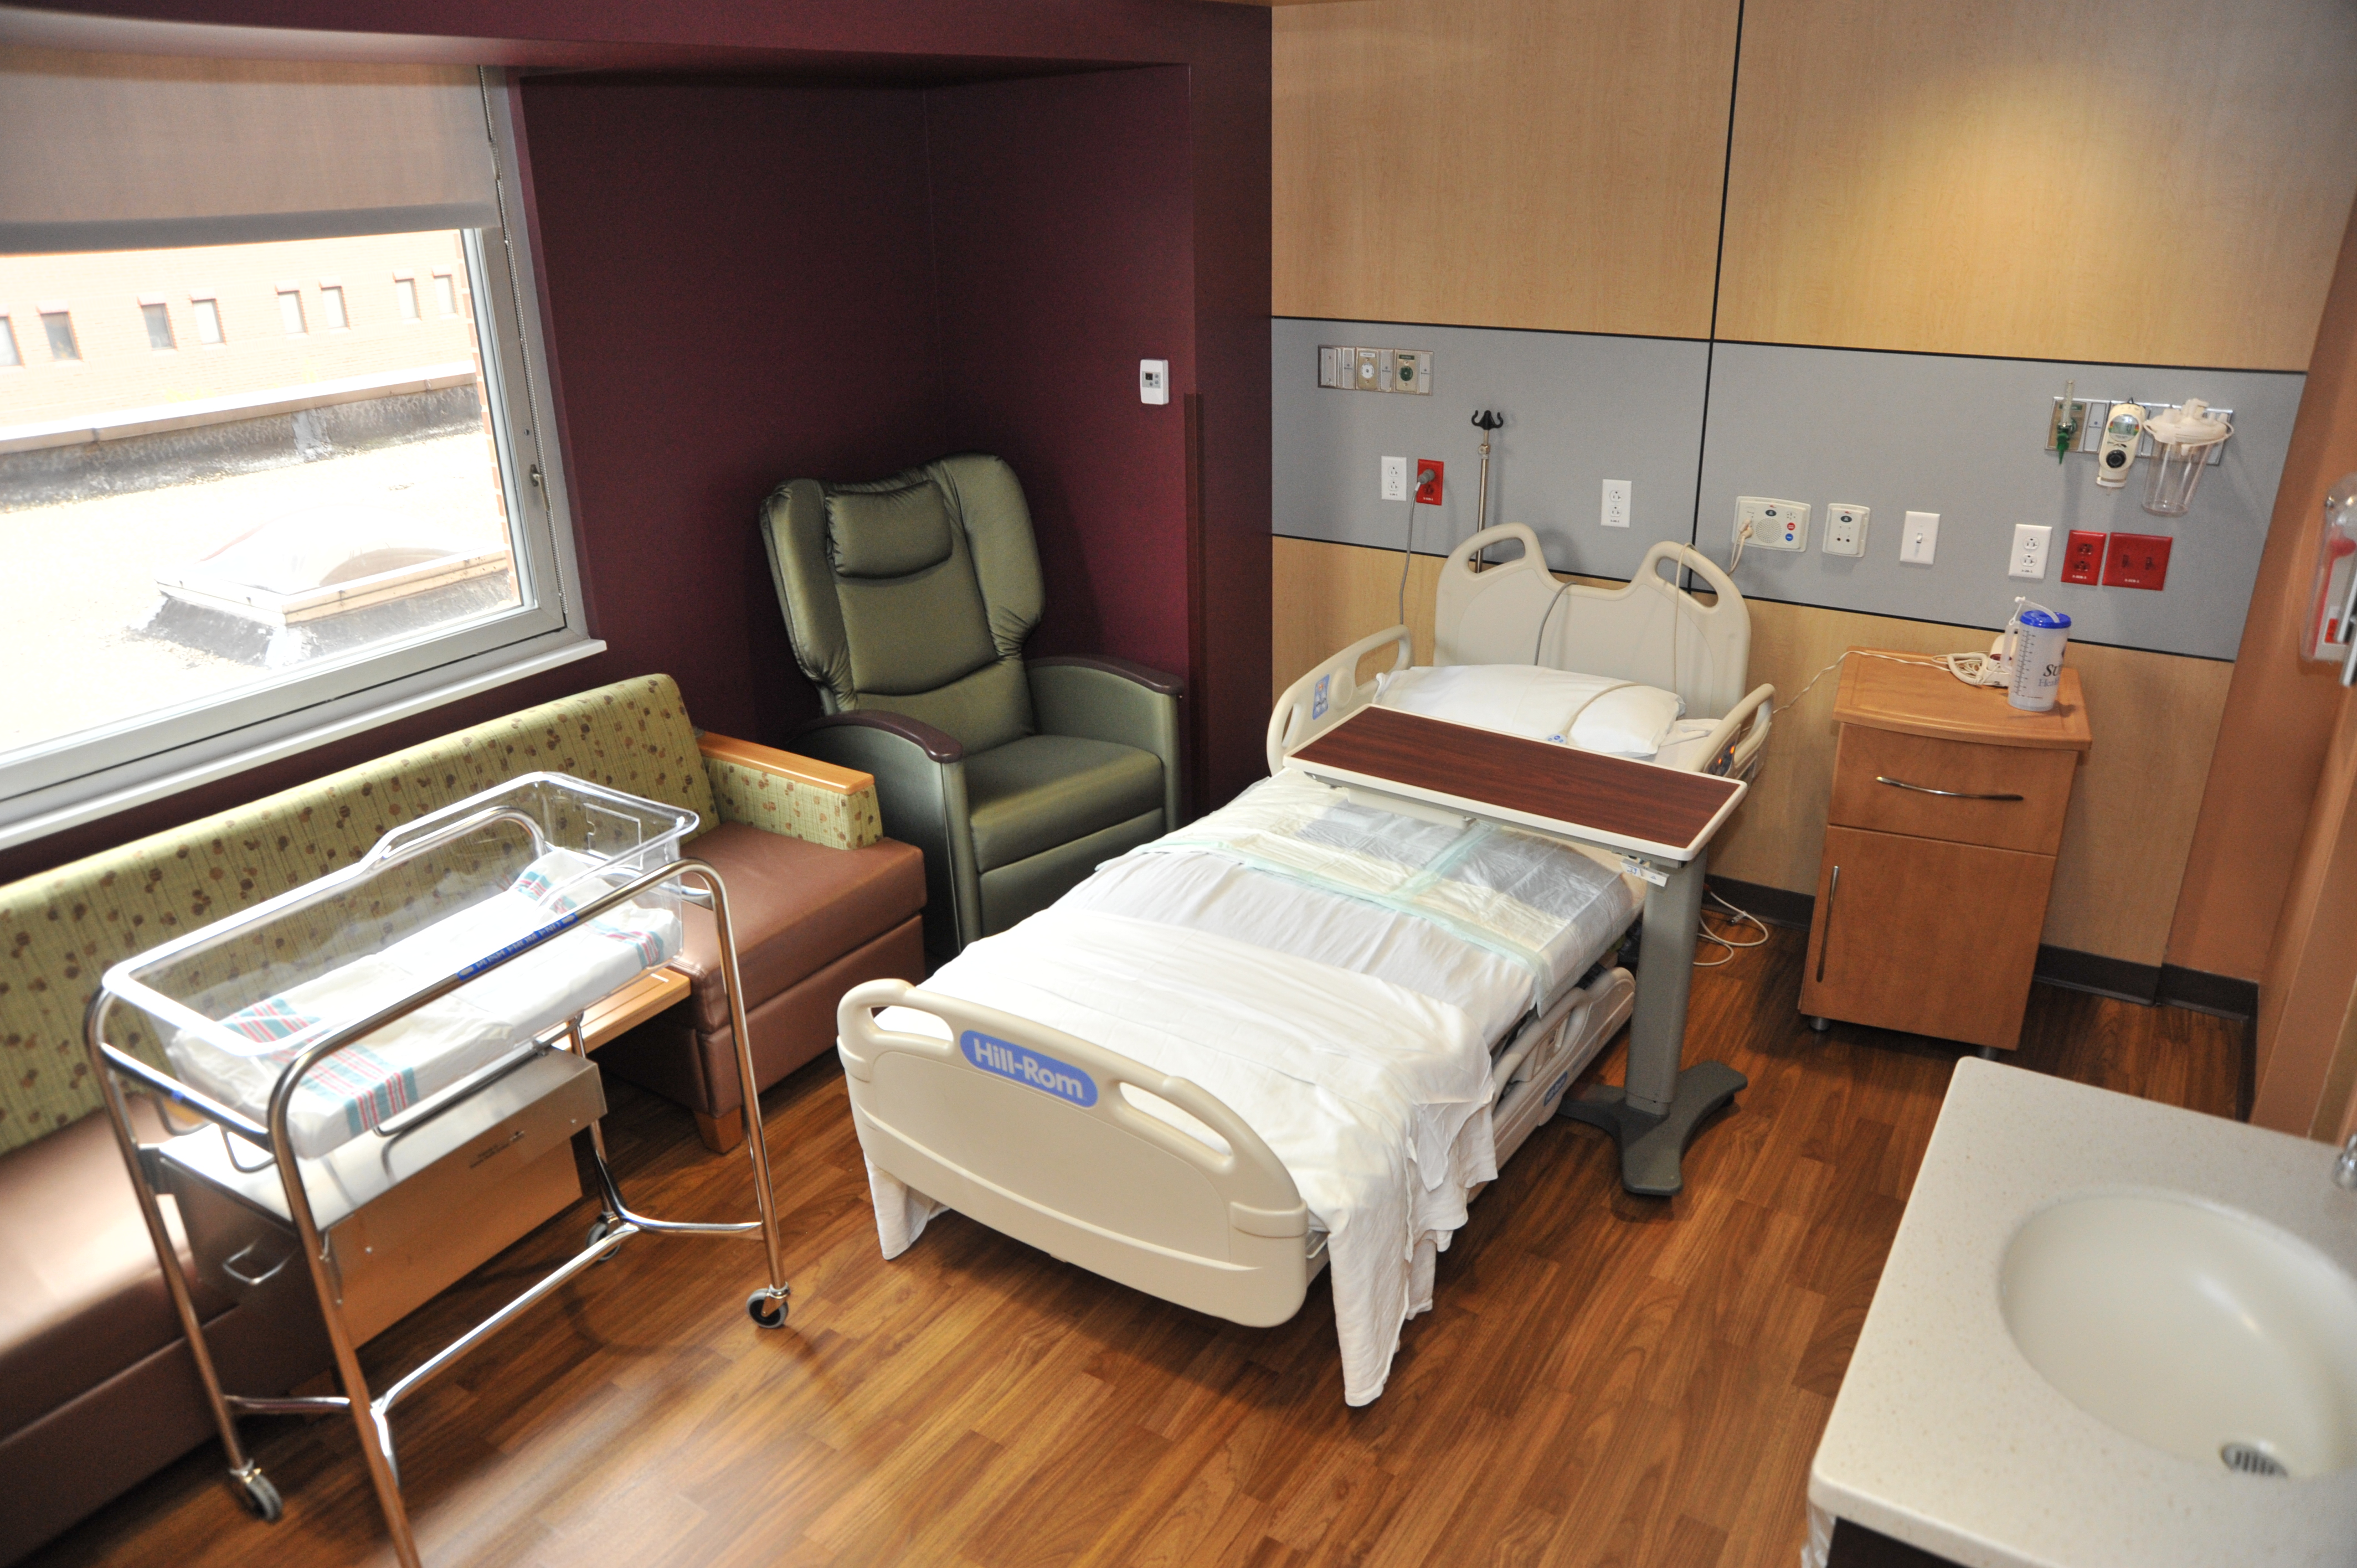 Summa Health System - Summa announces private mother/baby rooms at